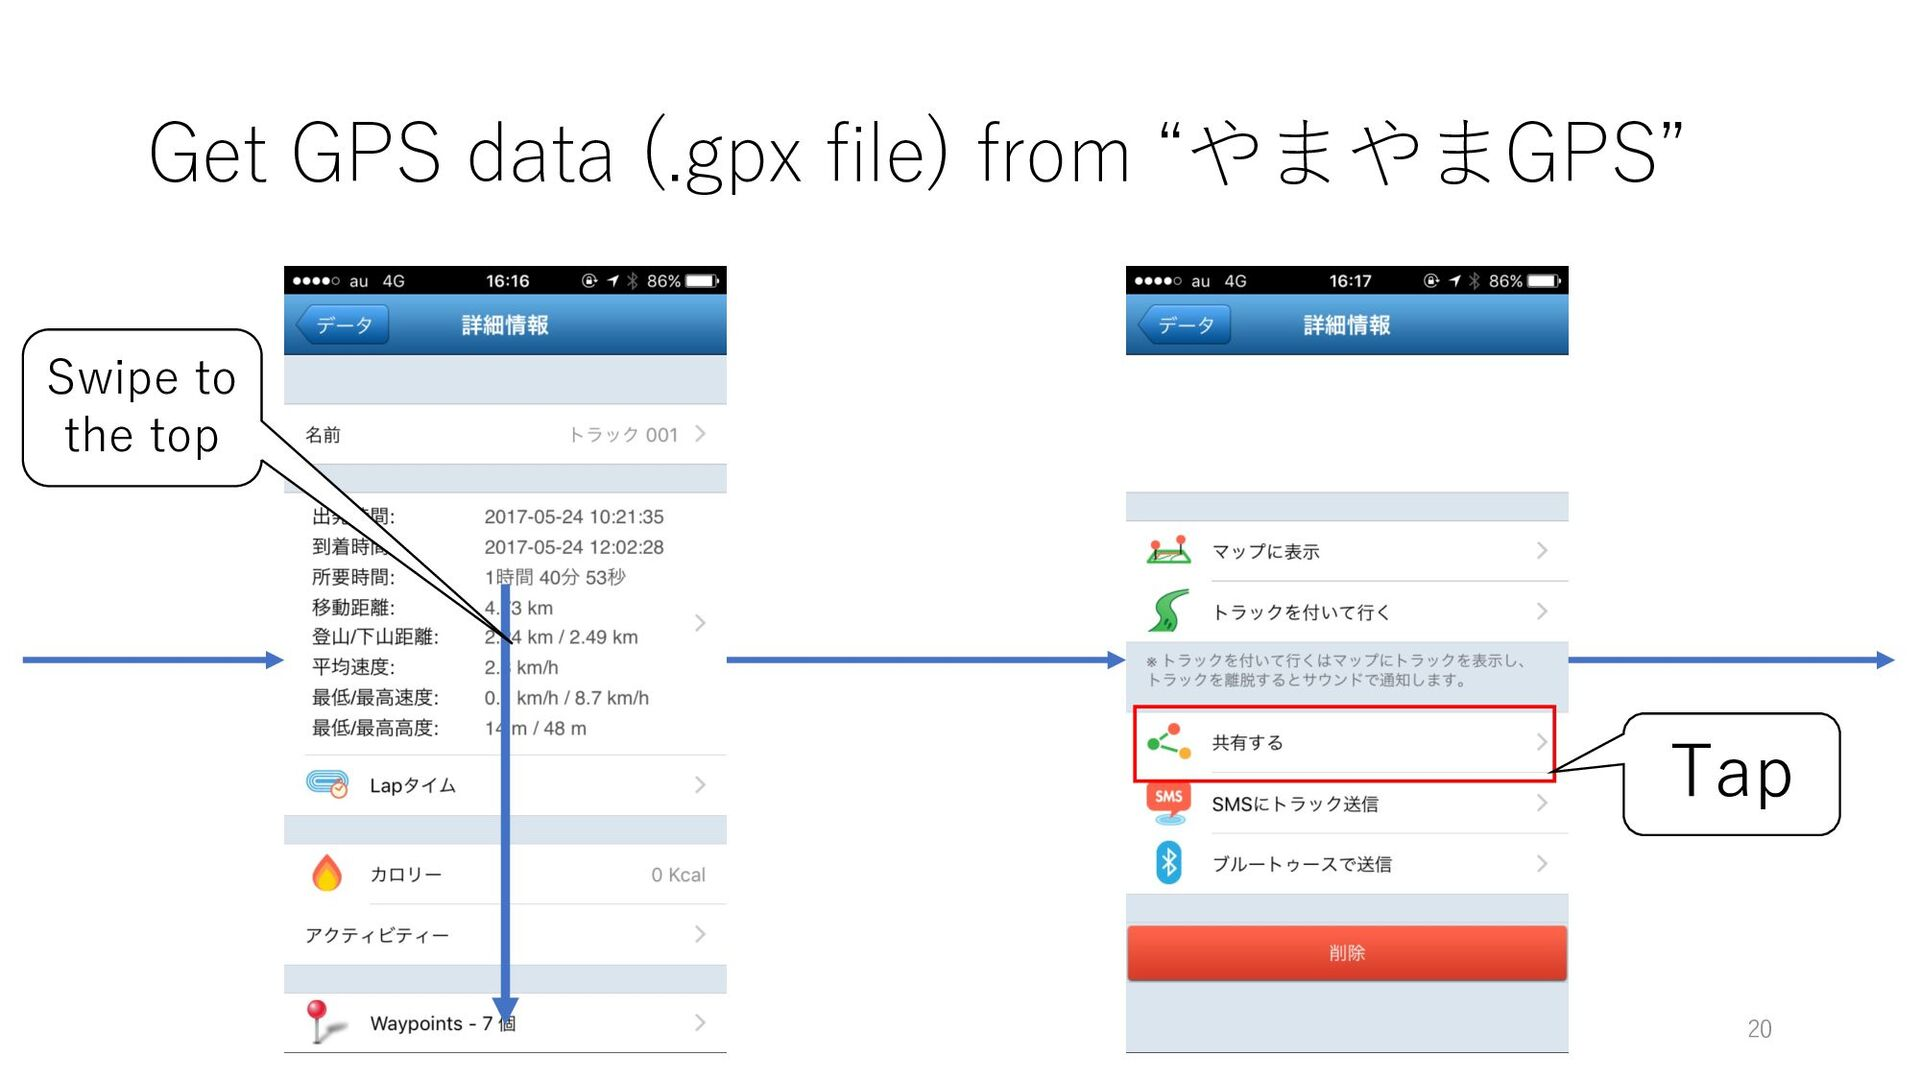 "Get GPS data (.gpx file) from ""やまやまGPS"" Tap Swi..."